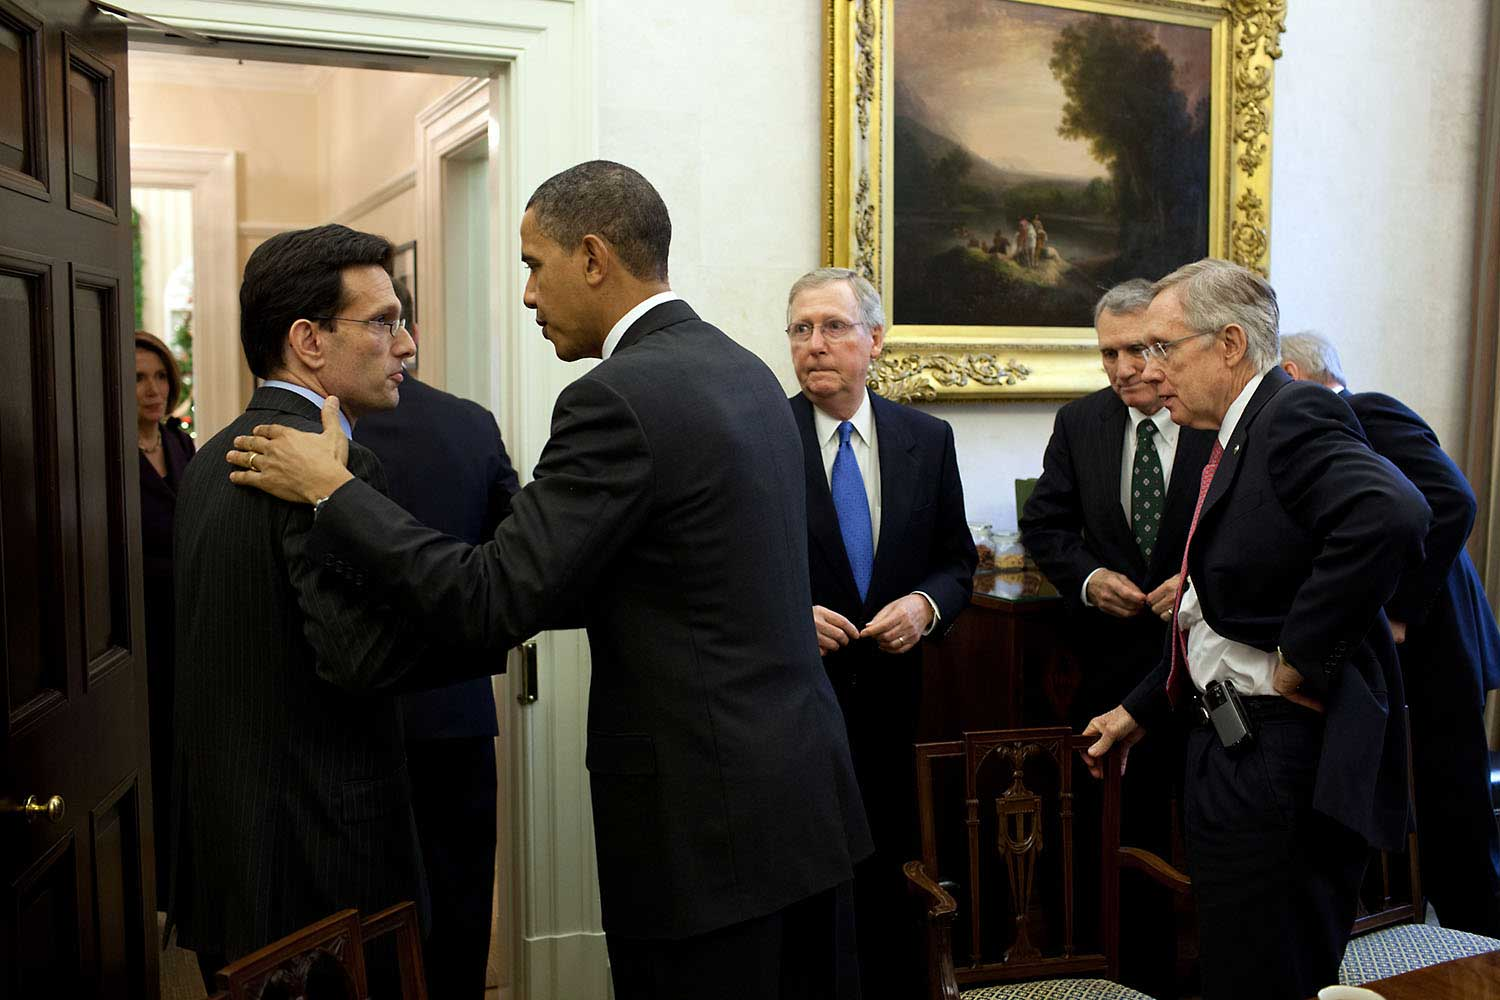 President Obama talks with Rep. Eric Cantor, the Republican Whip, after a meeting with bipartisan Congressional leadership in the Oval Office Private Dining Room, Nov. 30, 2010.